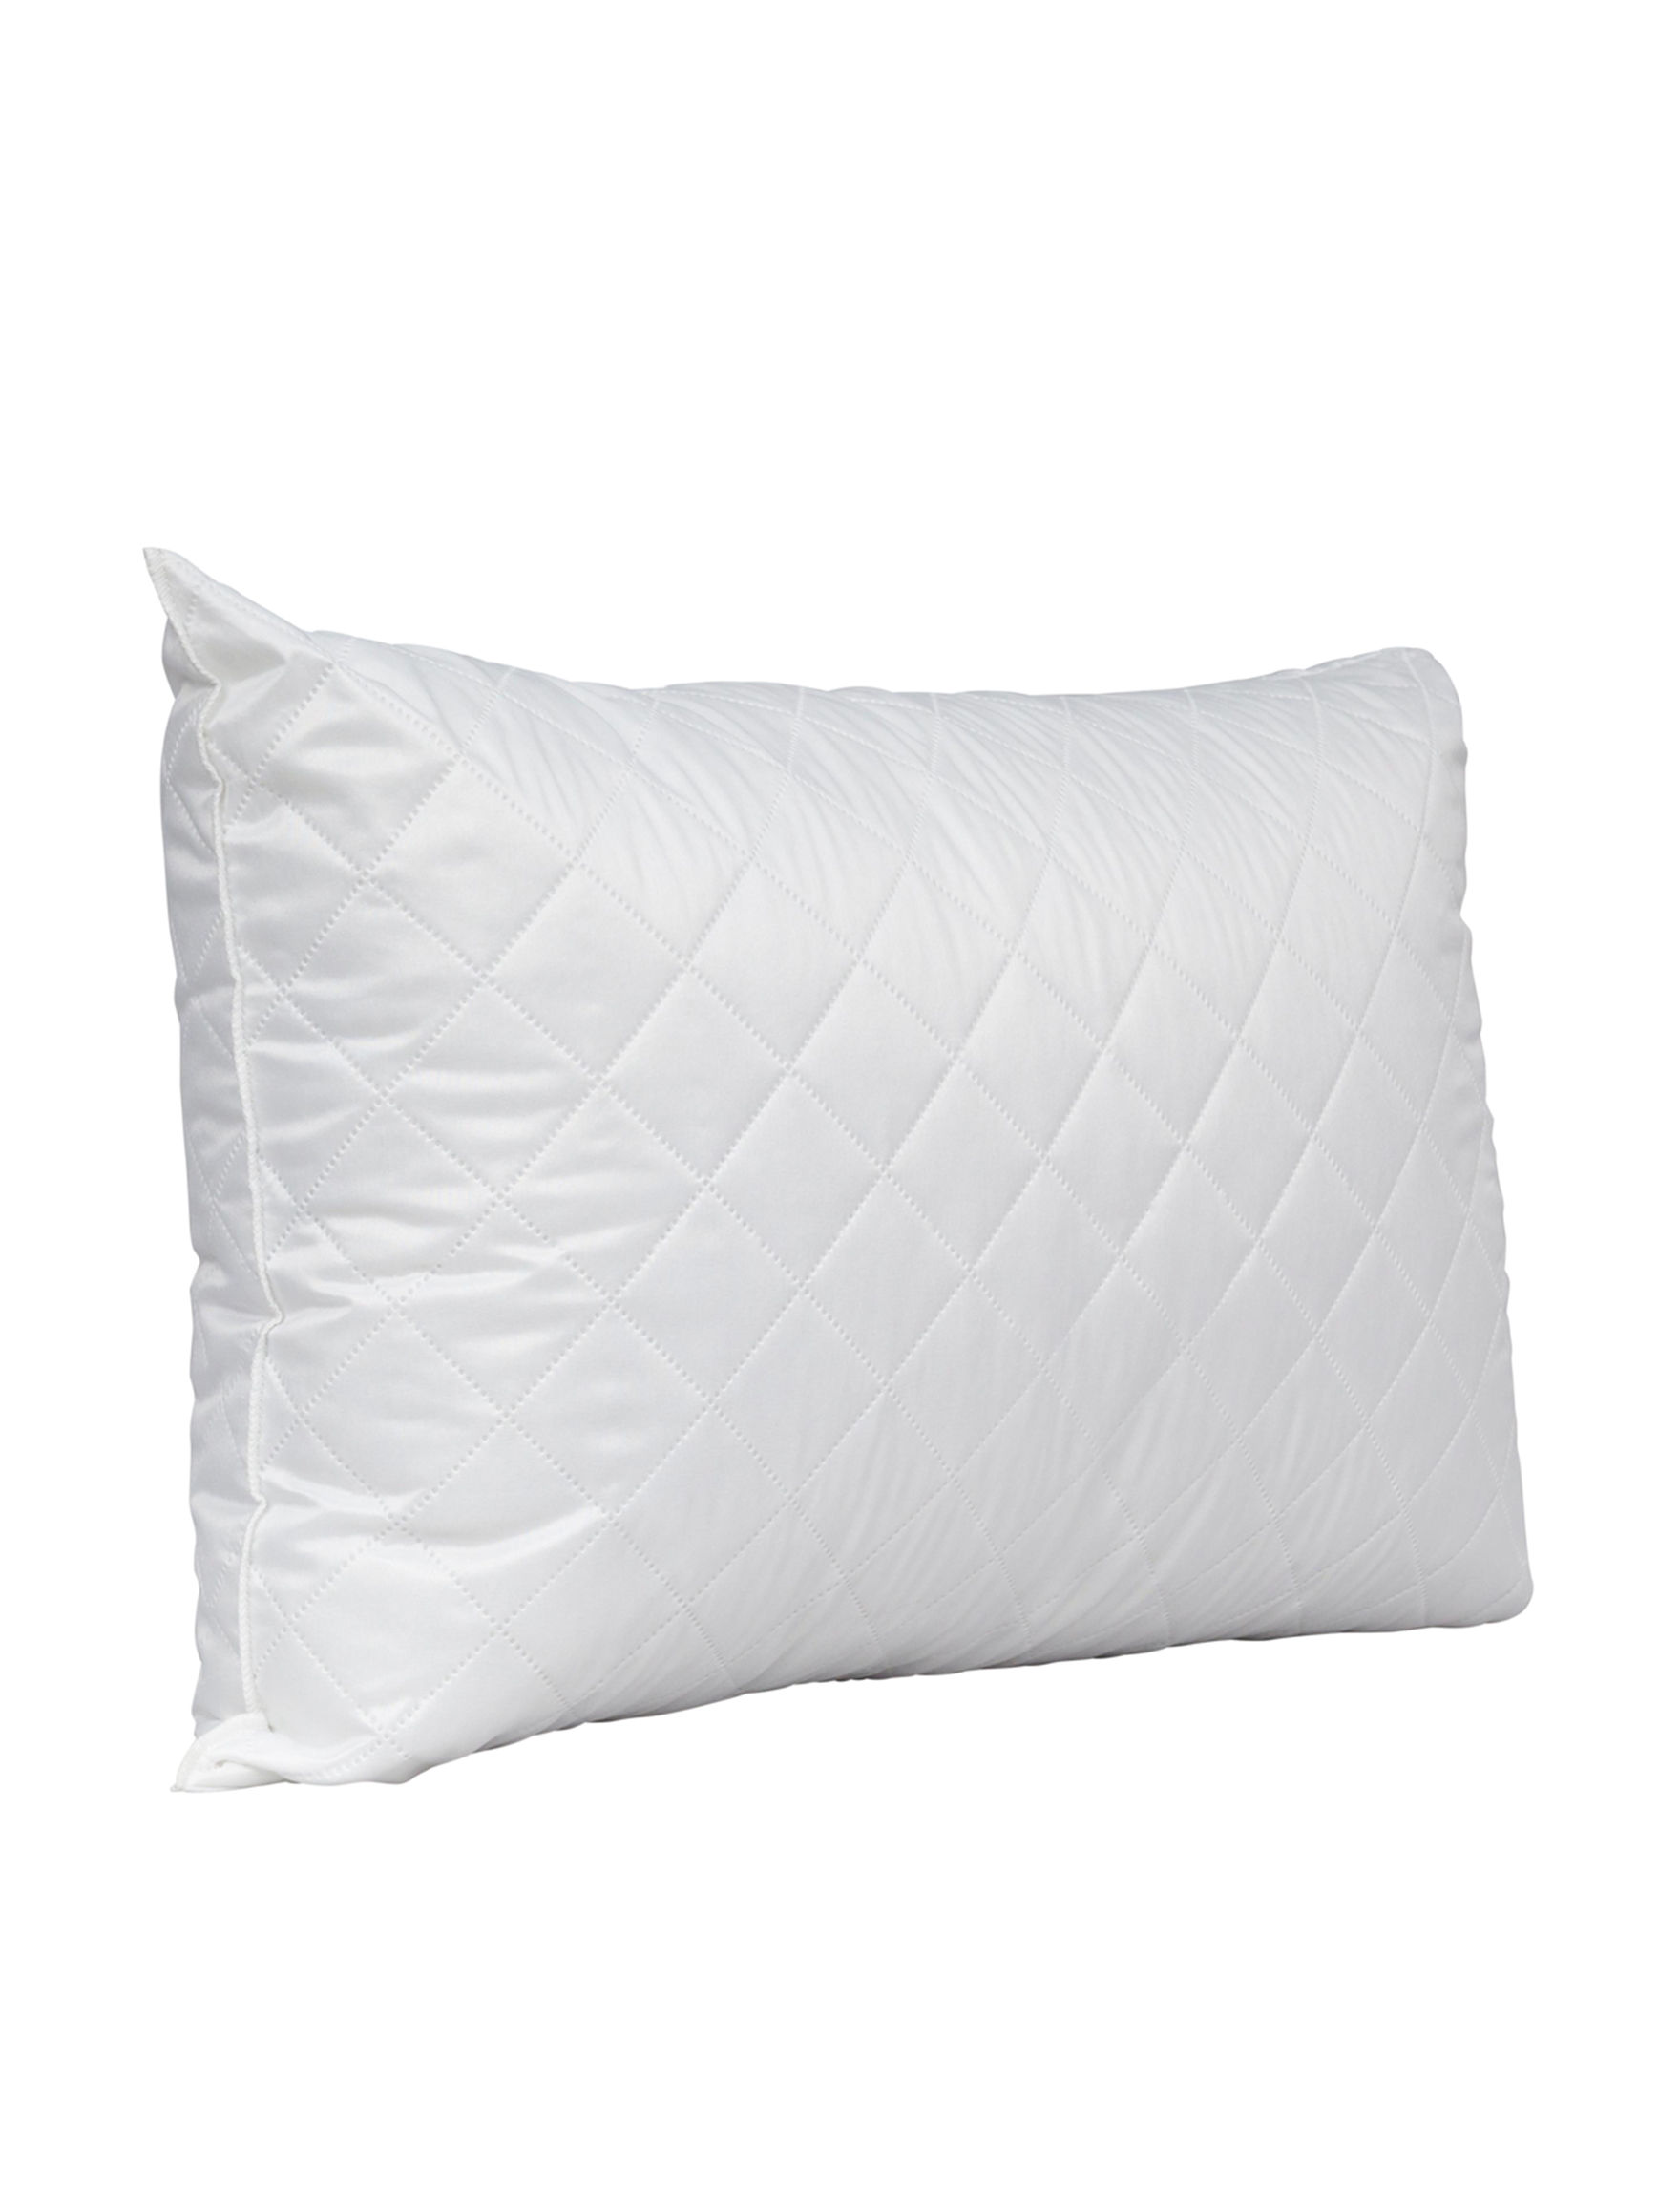 EZ Dreams White Bed Pillows